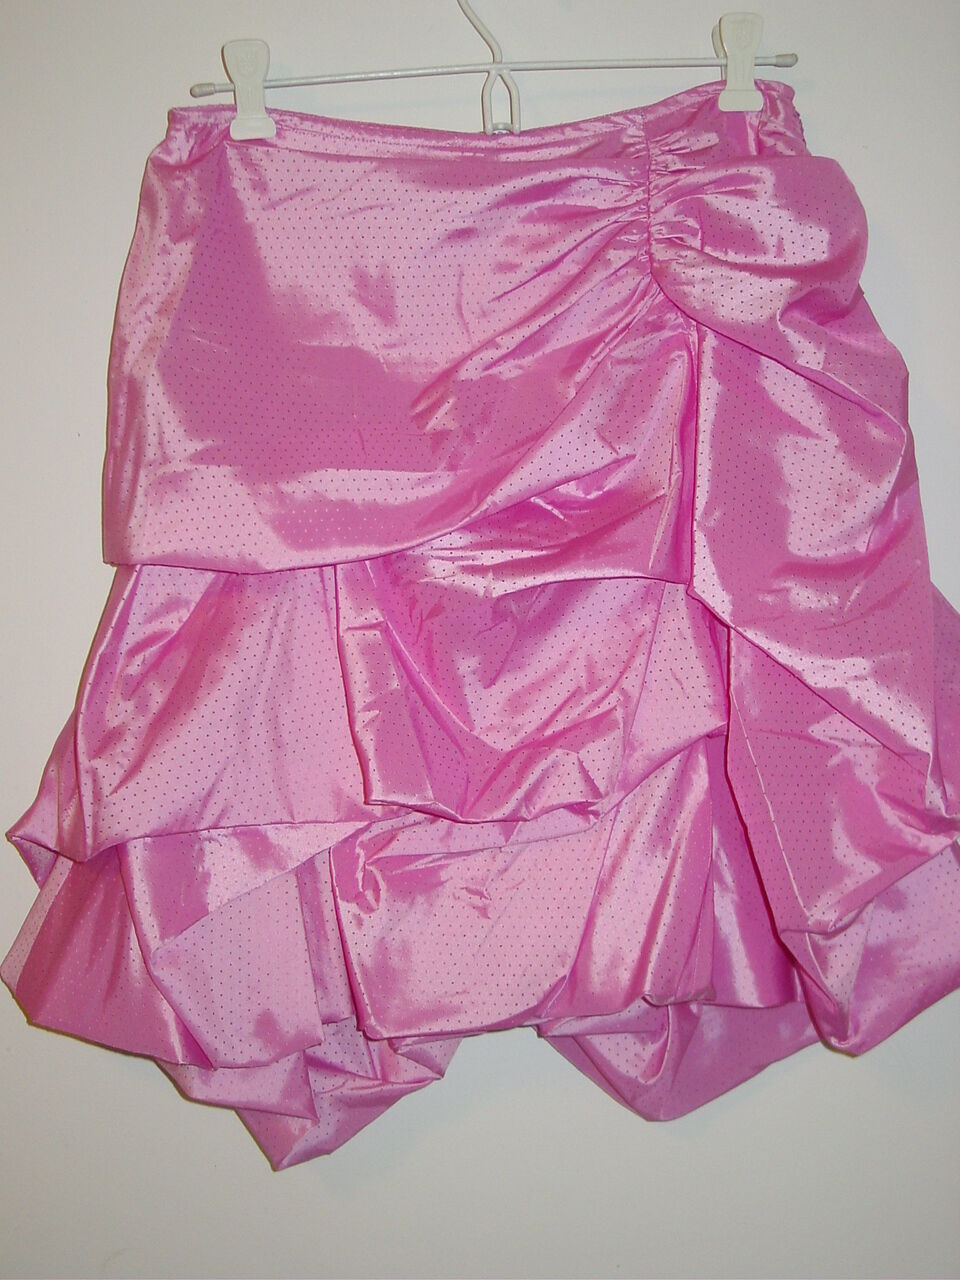 Samuel Dong Women's pink bubble skirt gathers lined slippery-S-NWT- 149.00